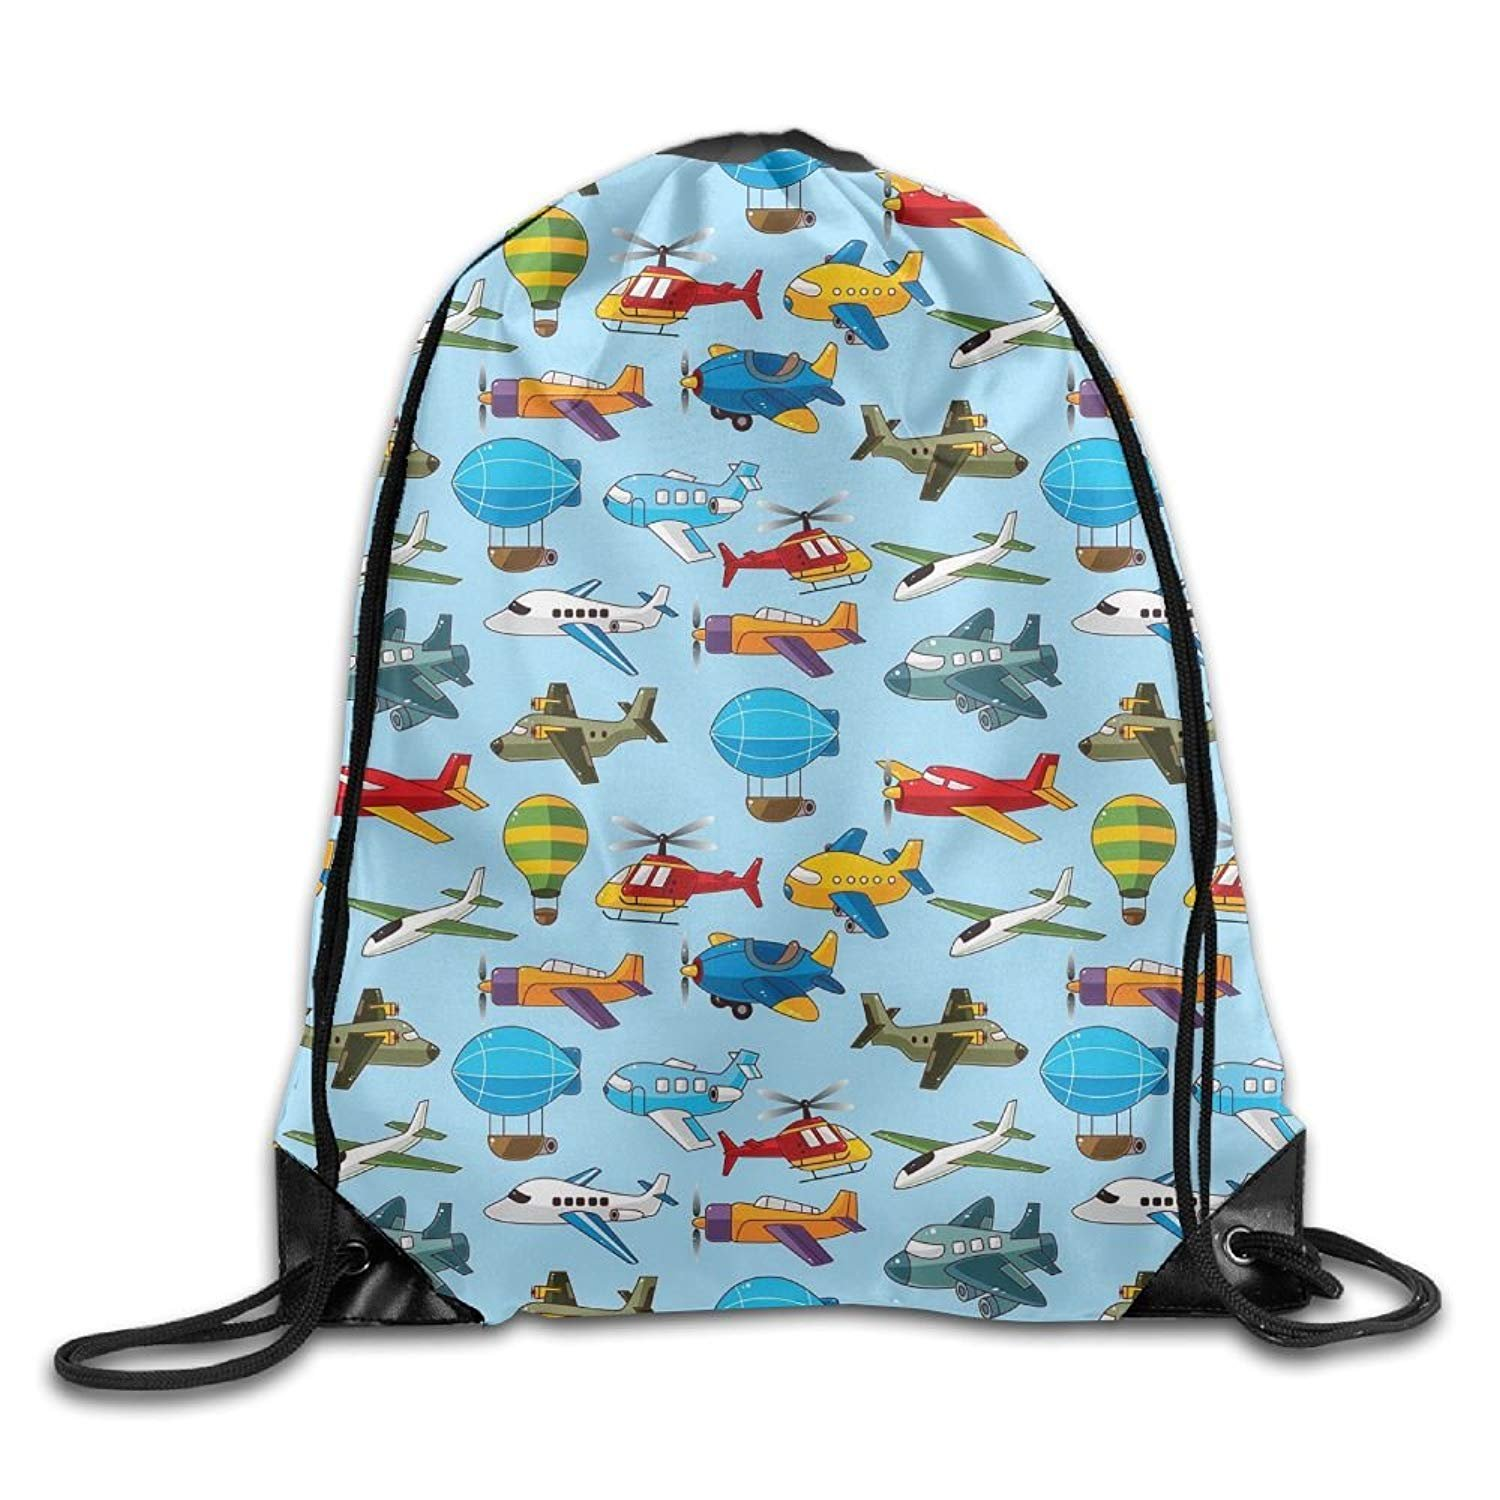 Gym Drawstring Bags Helicopter Airship Plane Draw Rope Shopping Travel Backpack Tote Student Camping